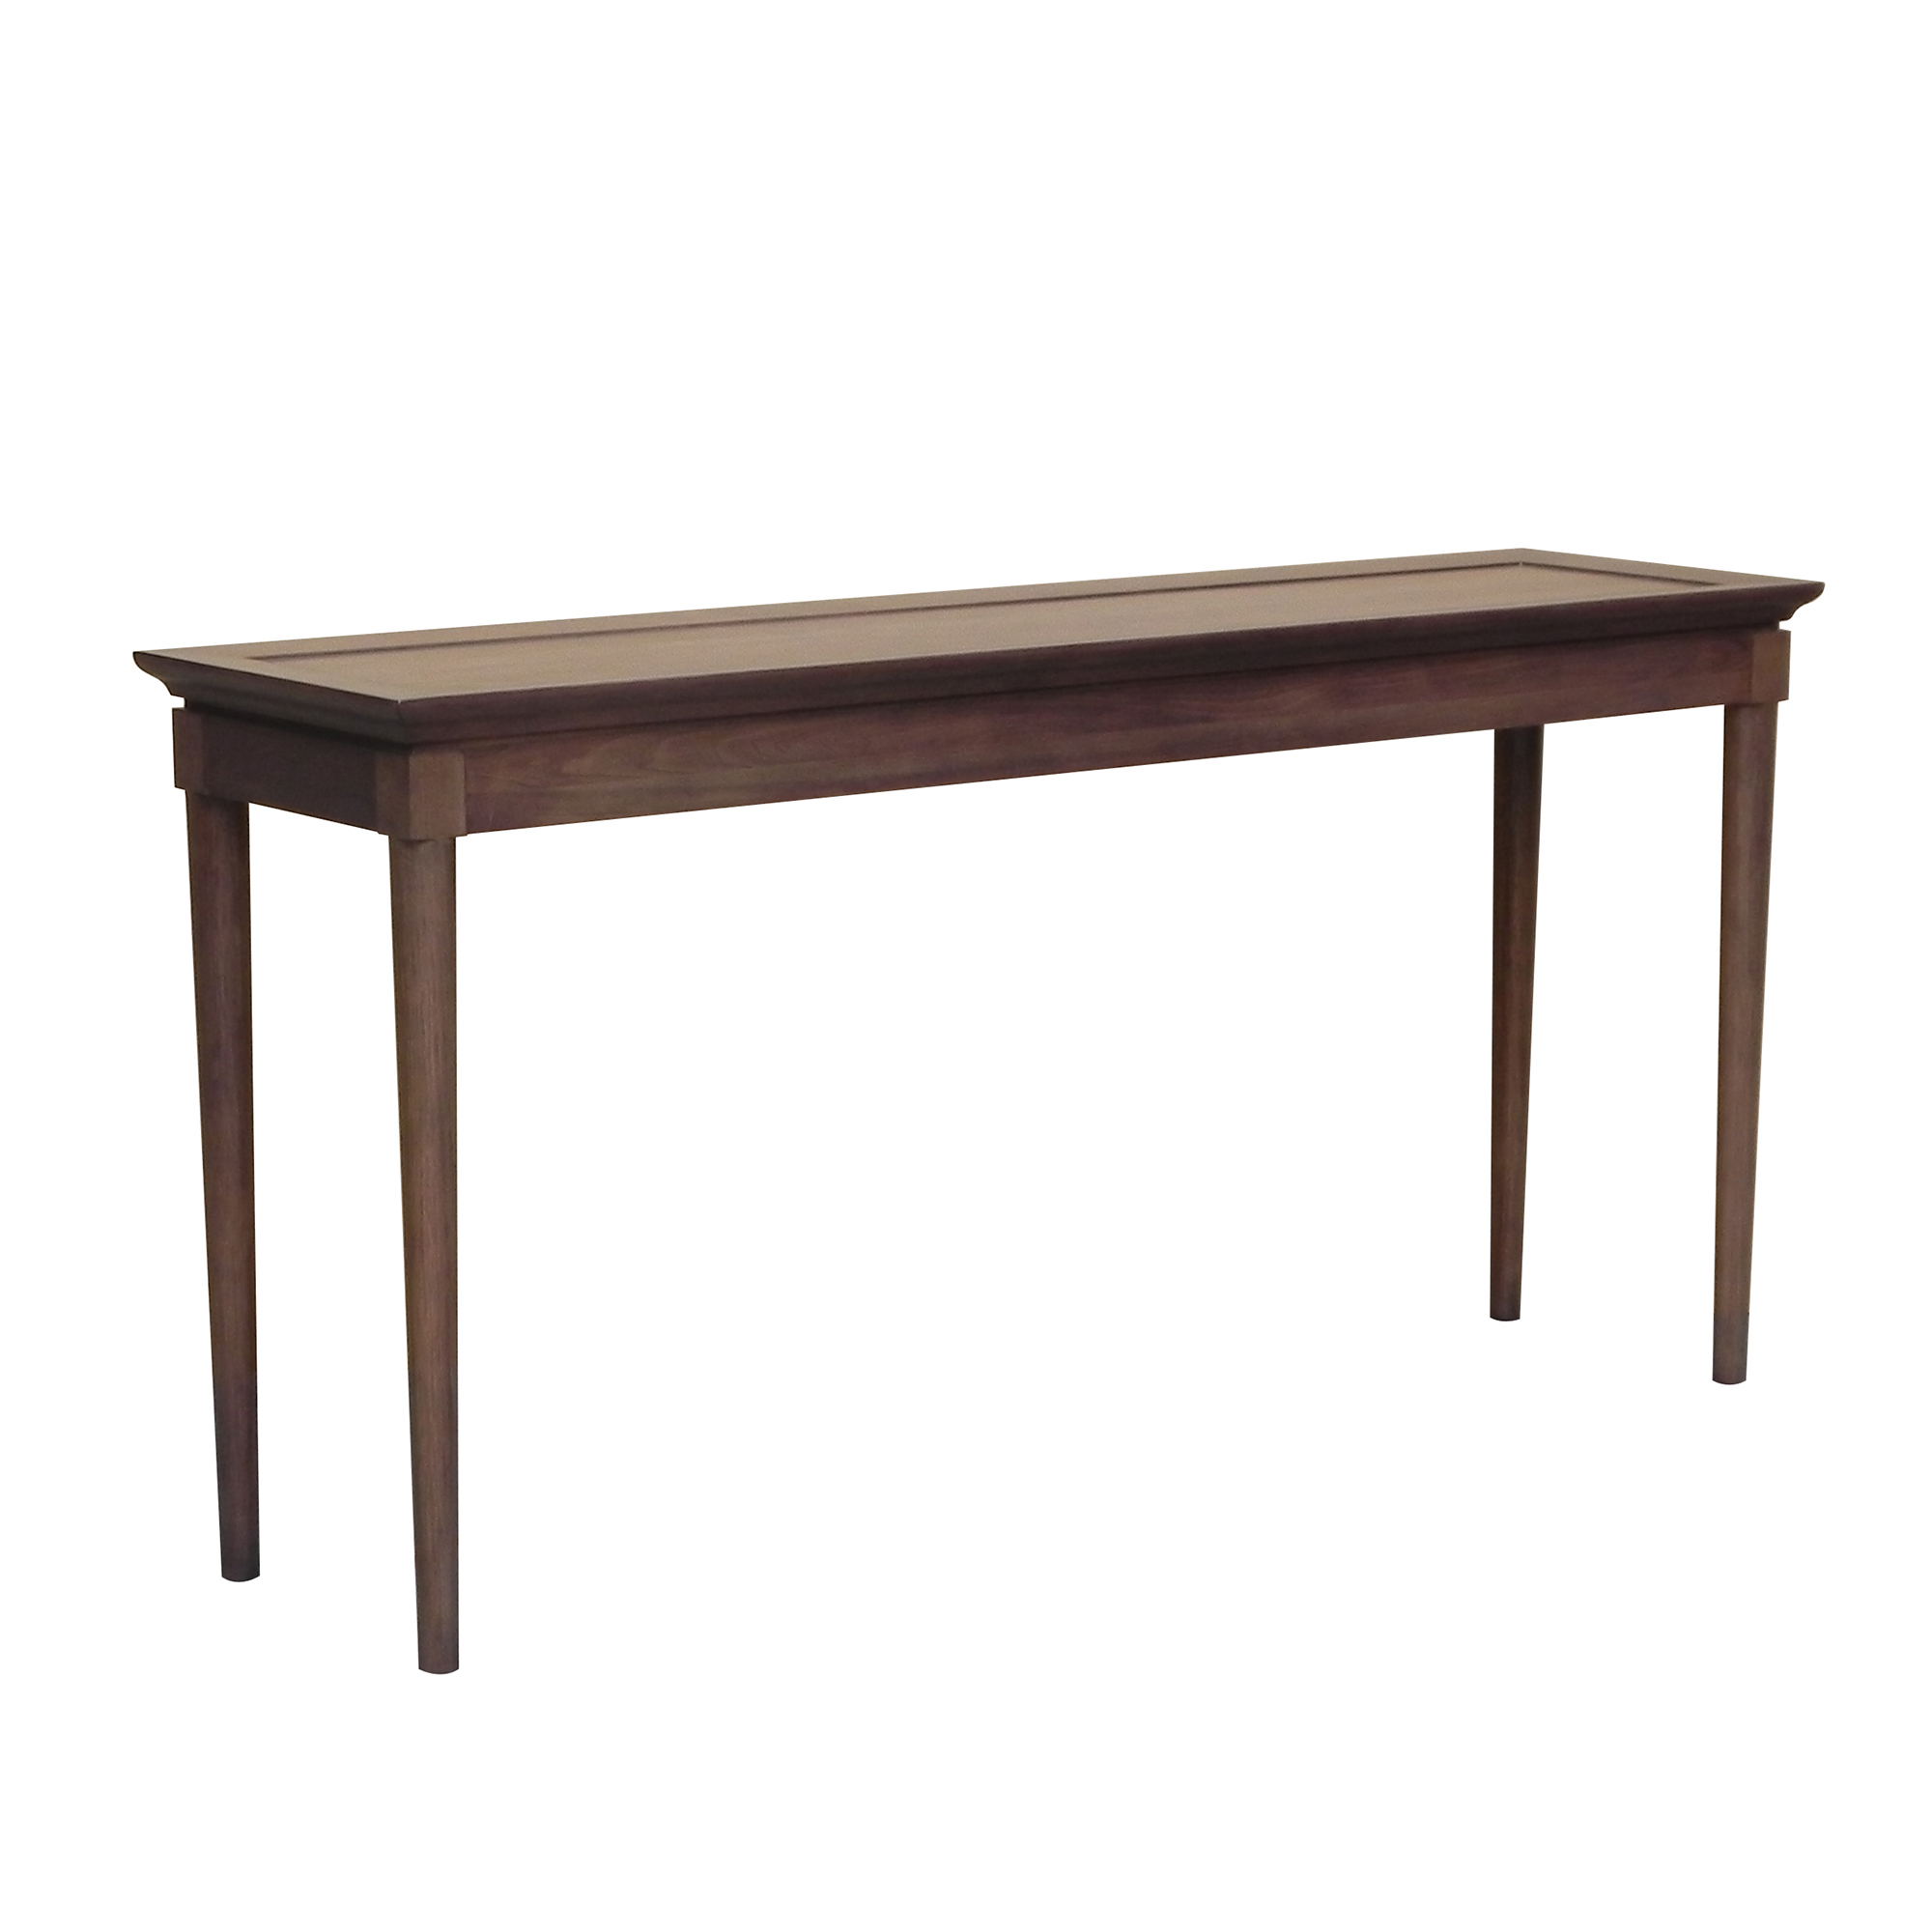 "Maria Yee Lucida 60"" Table, Pumpernickel"